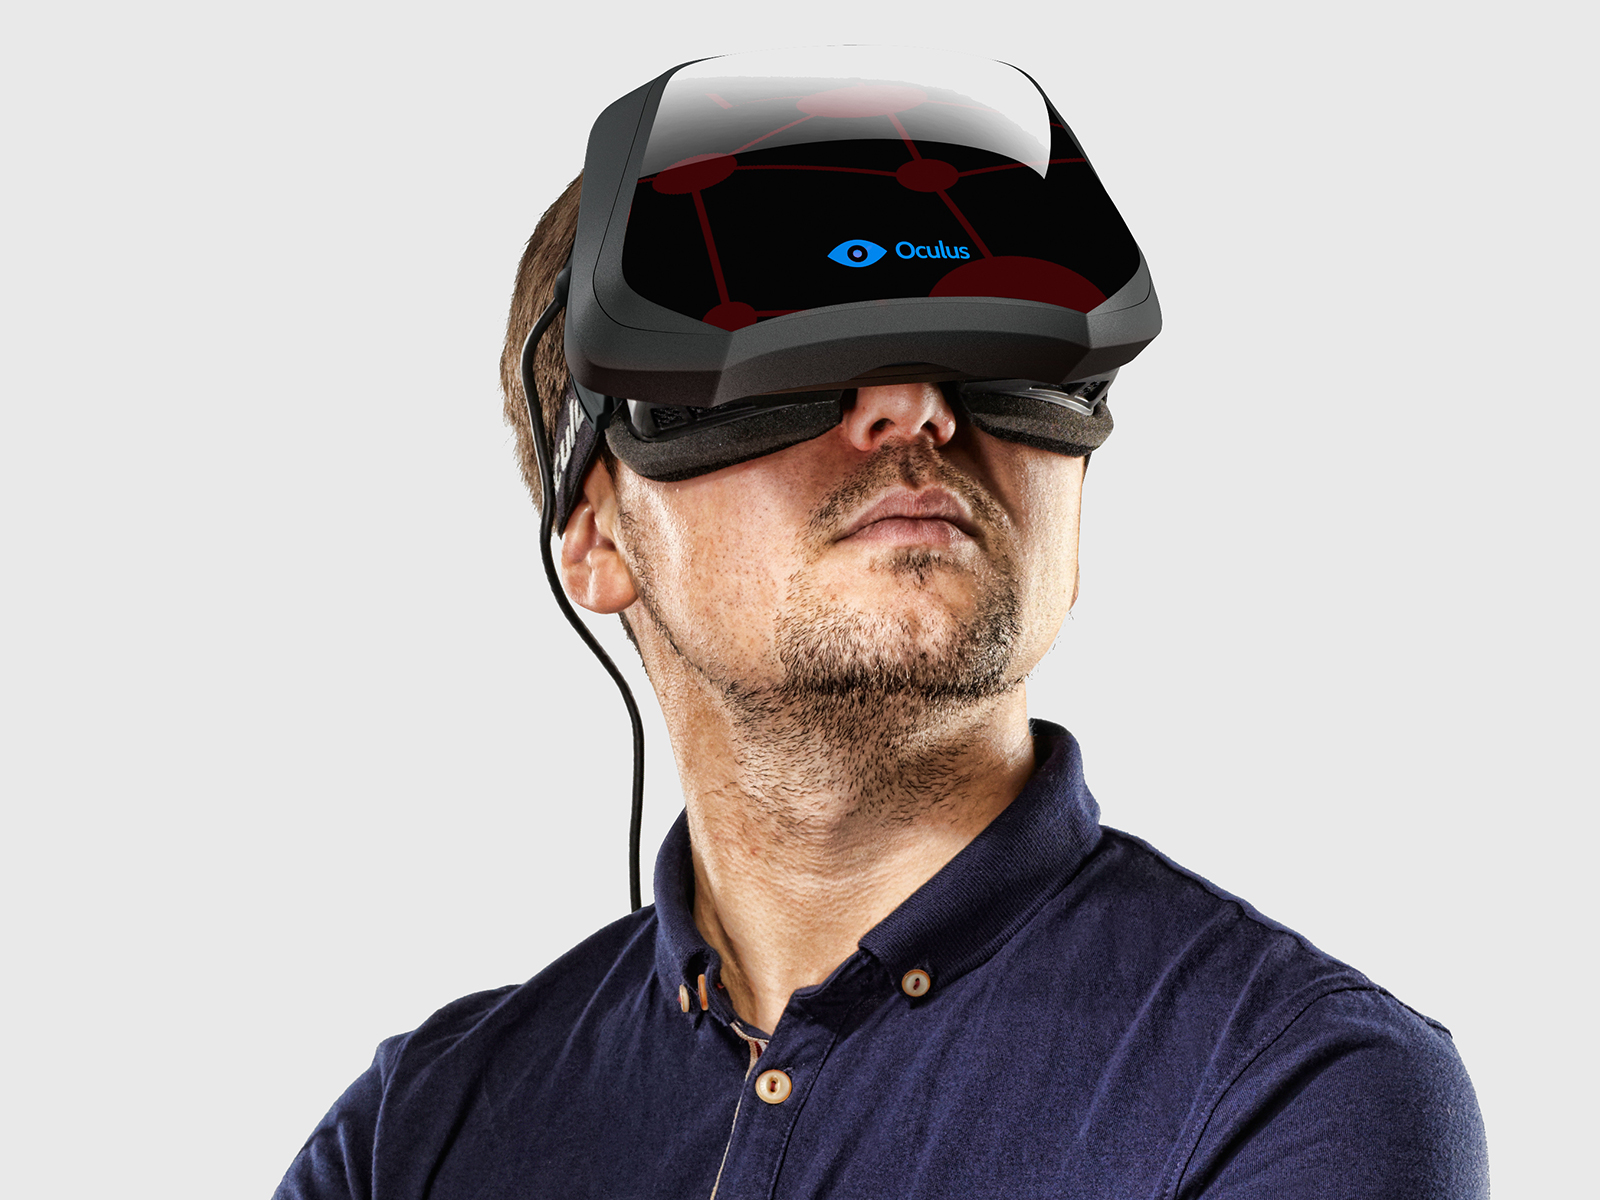 Portrait of a man wearing a development stage Oculus Rift virtual reality head-mounted display, taken on October 3, 2013. (Photo by James Looker/PC Gamer Magazine via Getty Images)